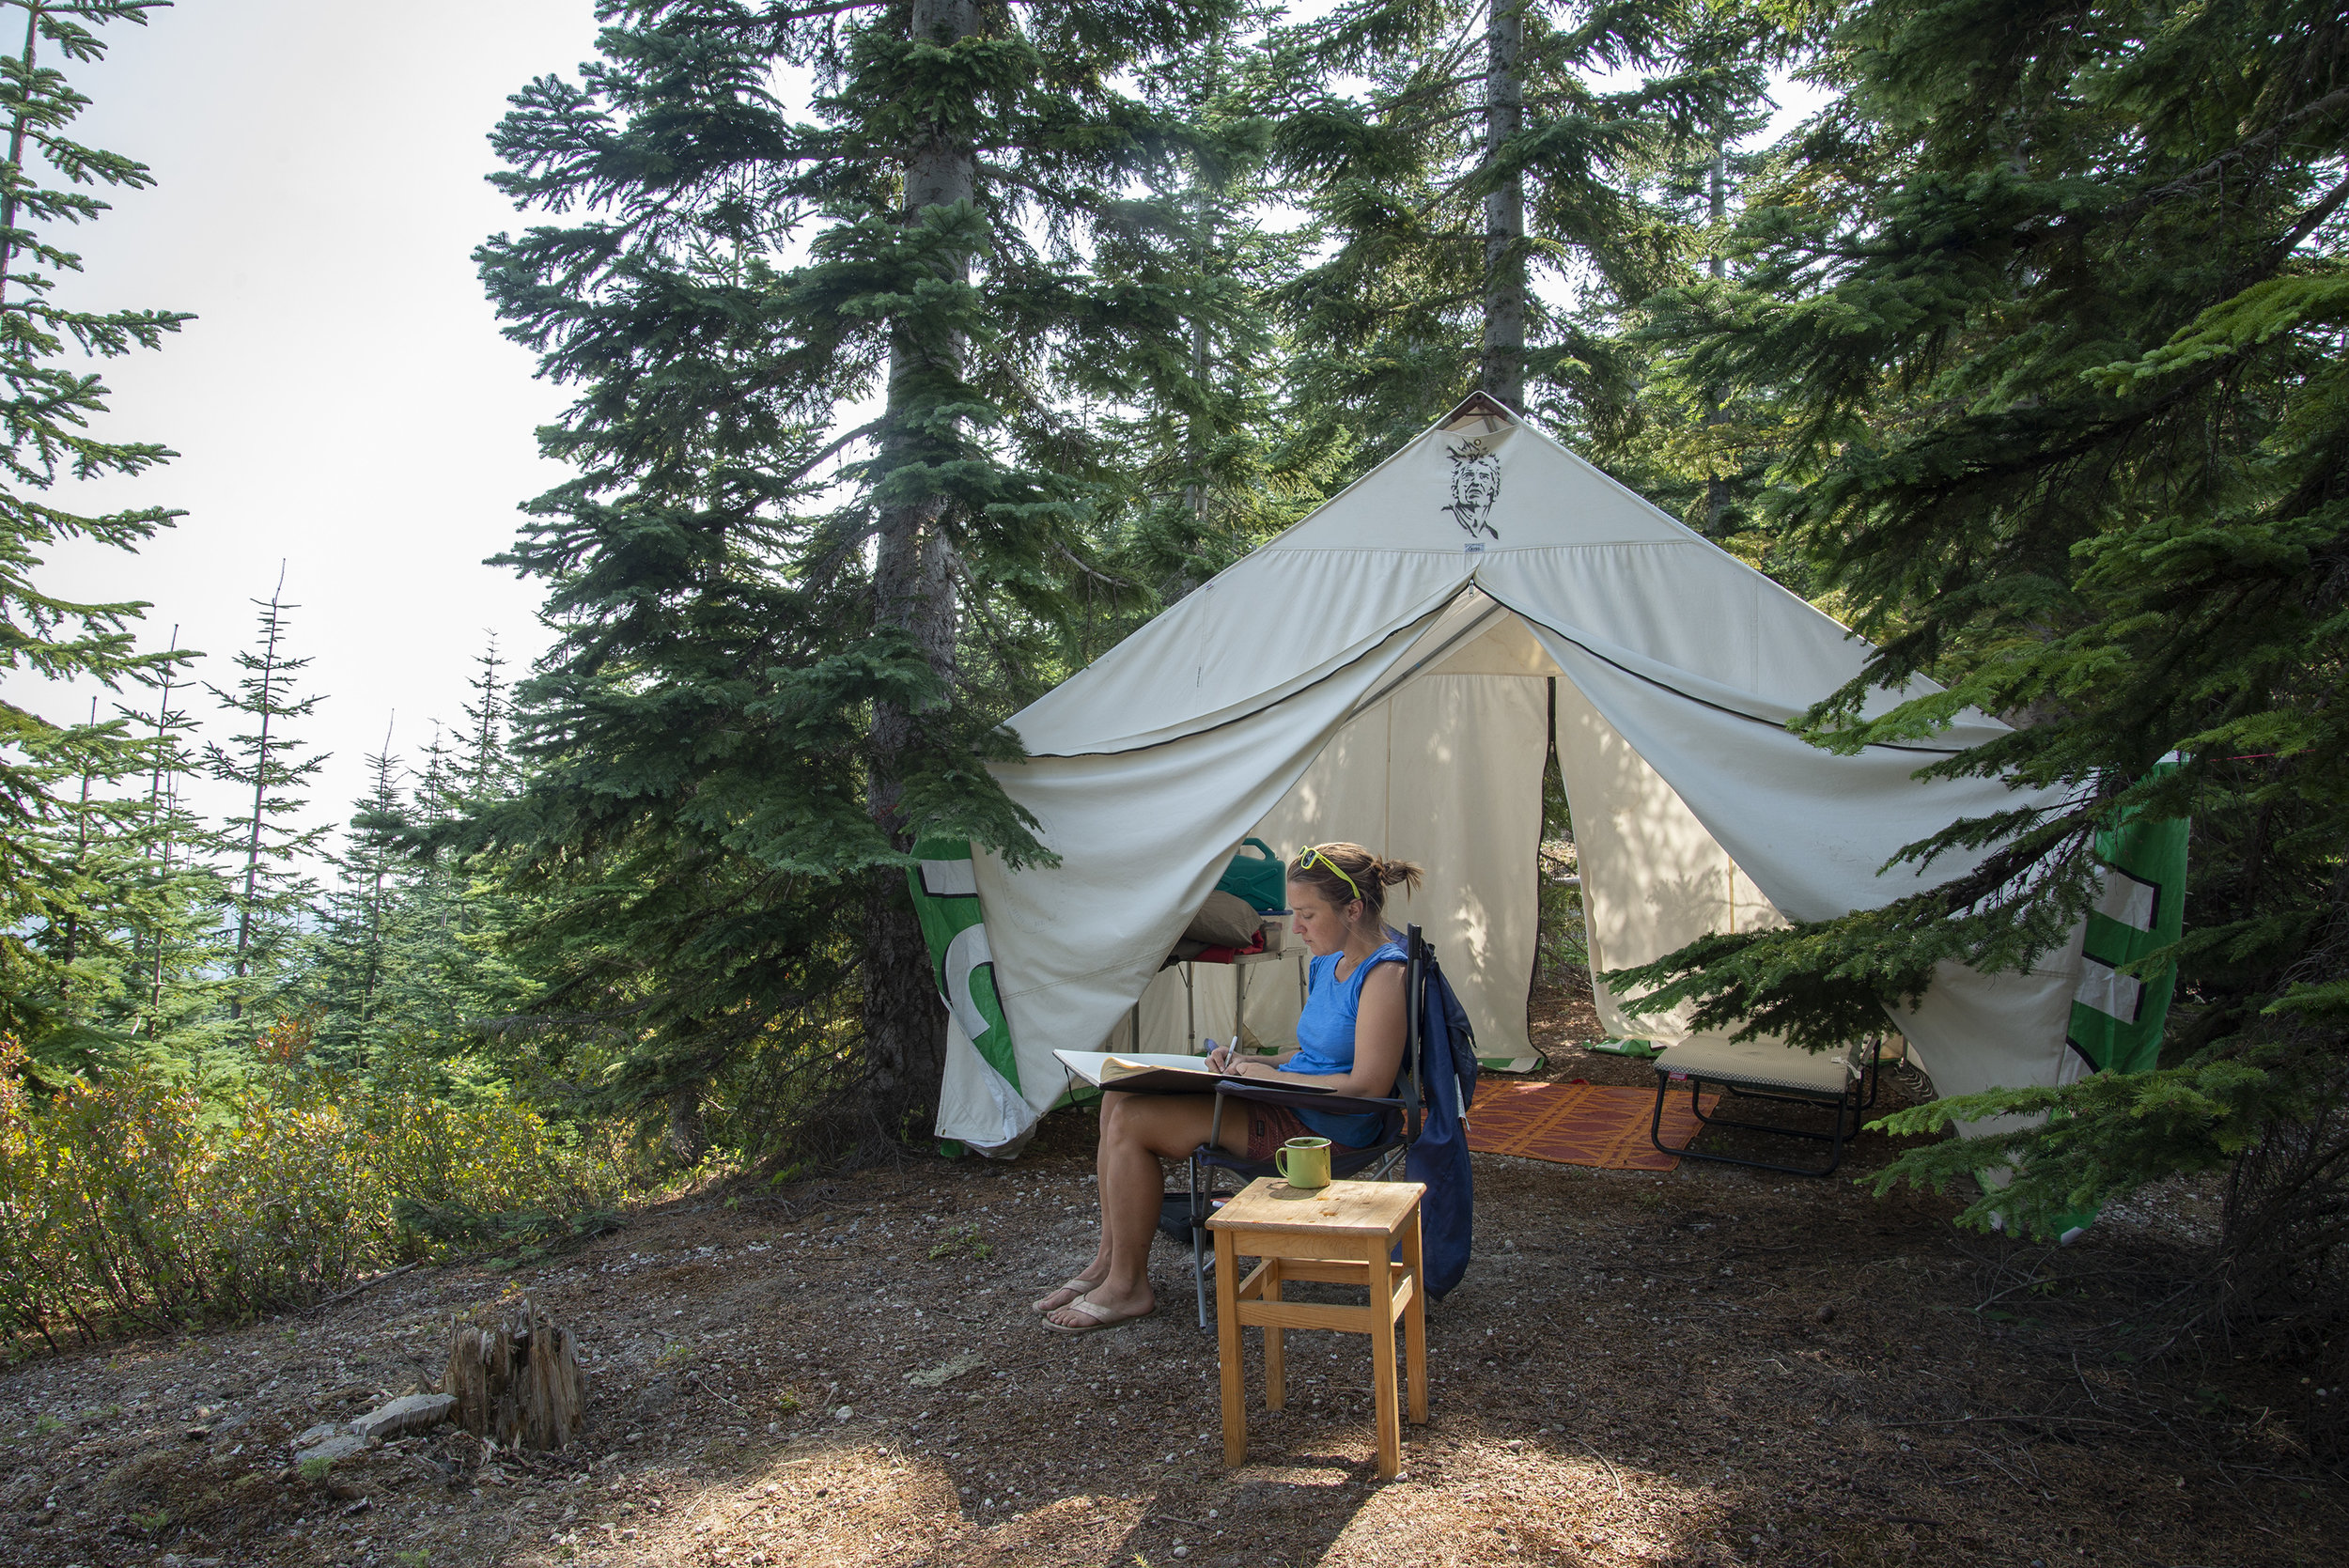 Signal Fire's Outpost Residency on Loowit - Mount Saint Helen's National Monument, WA